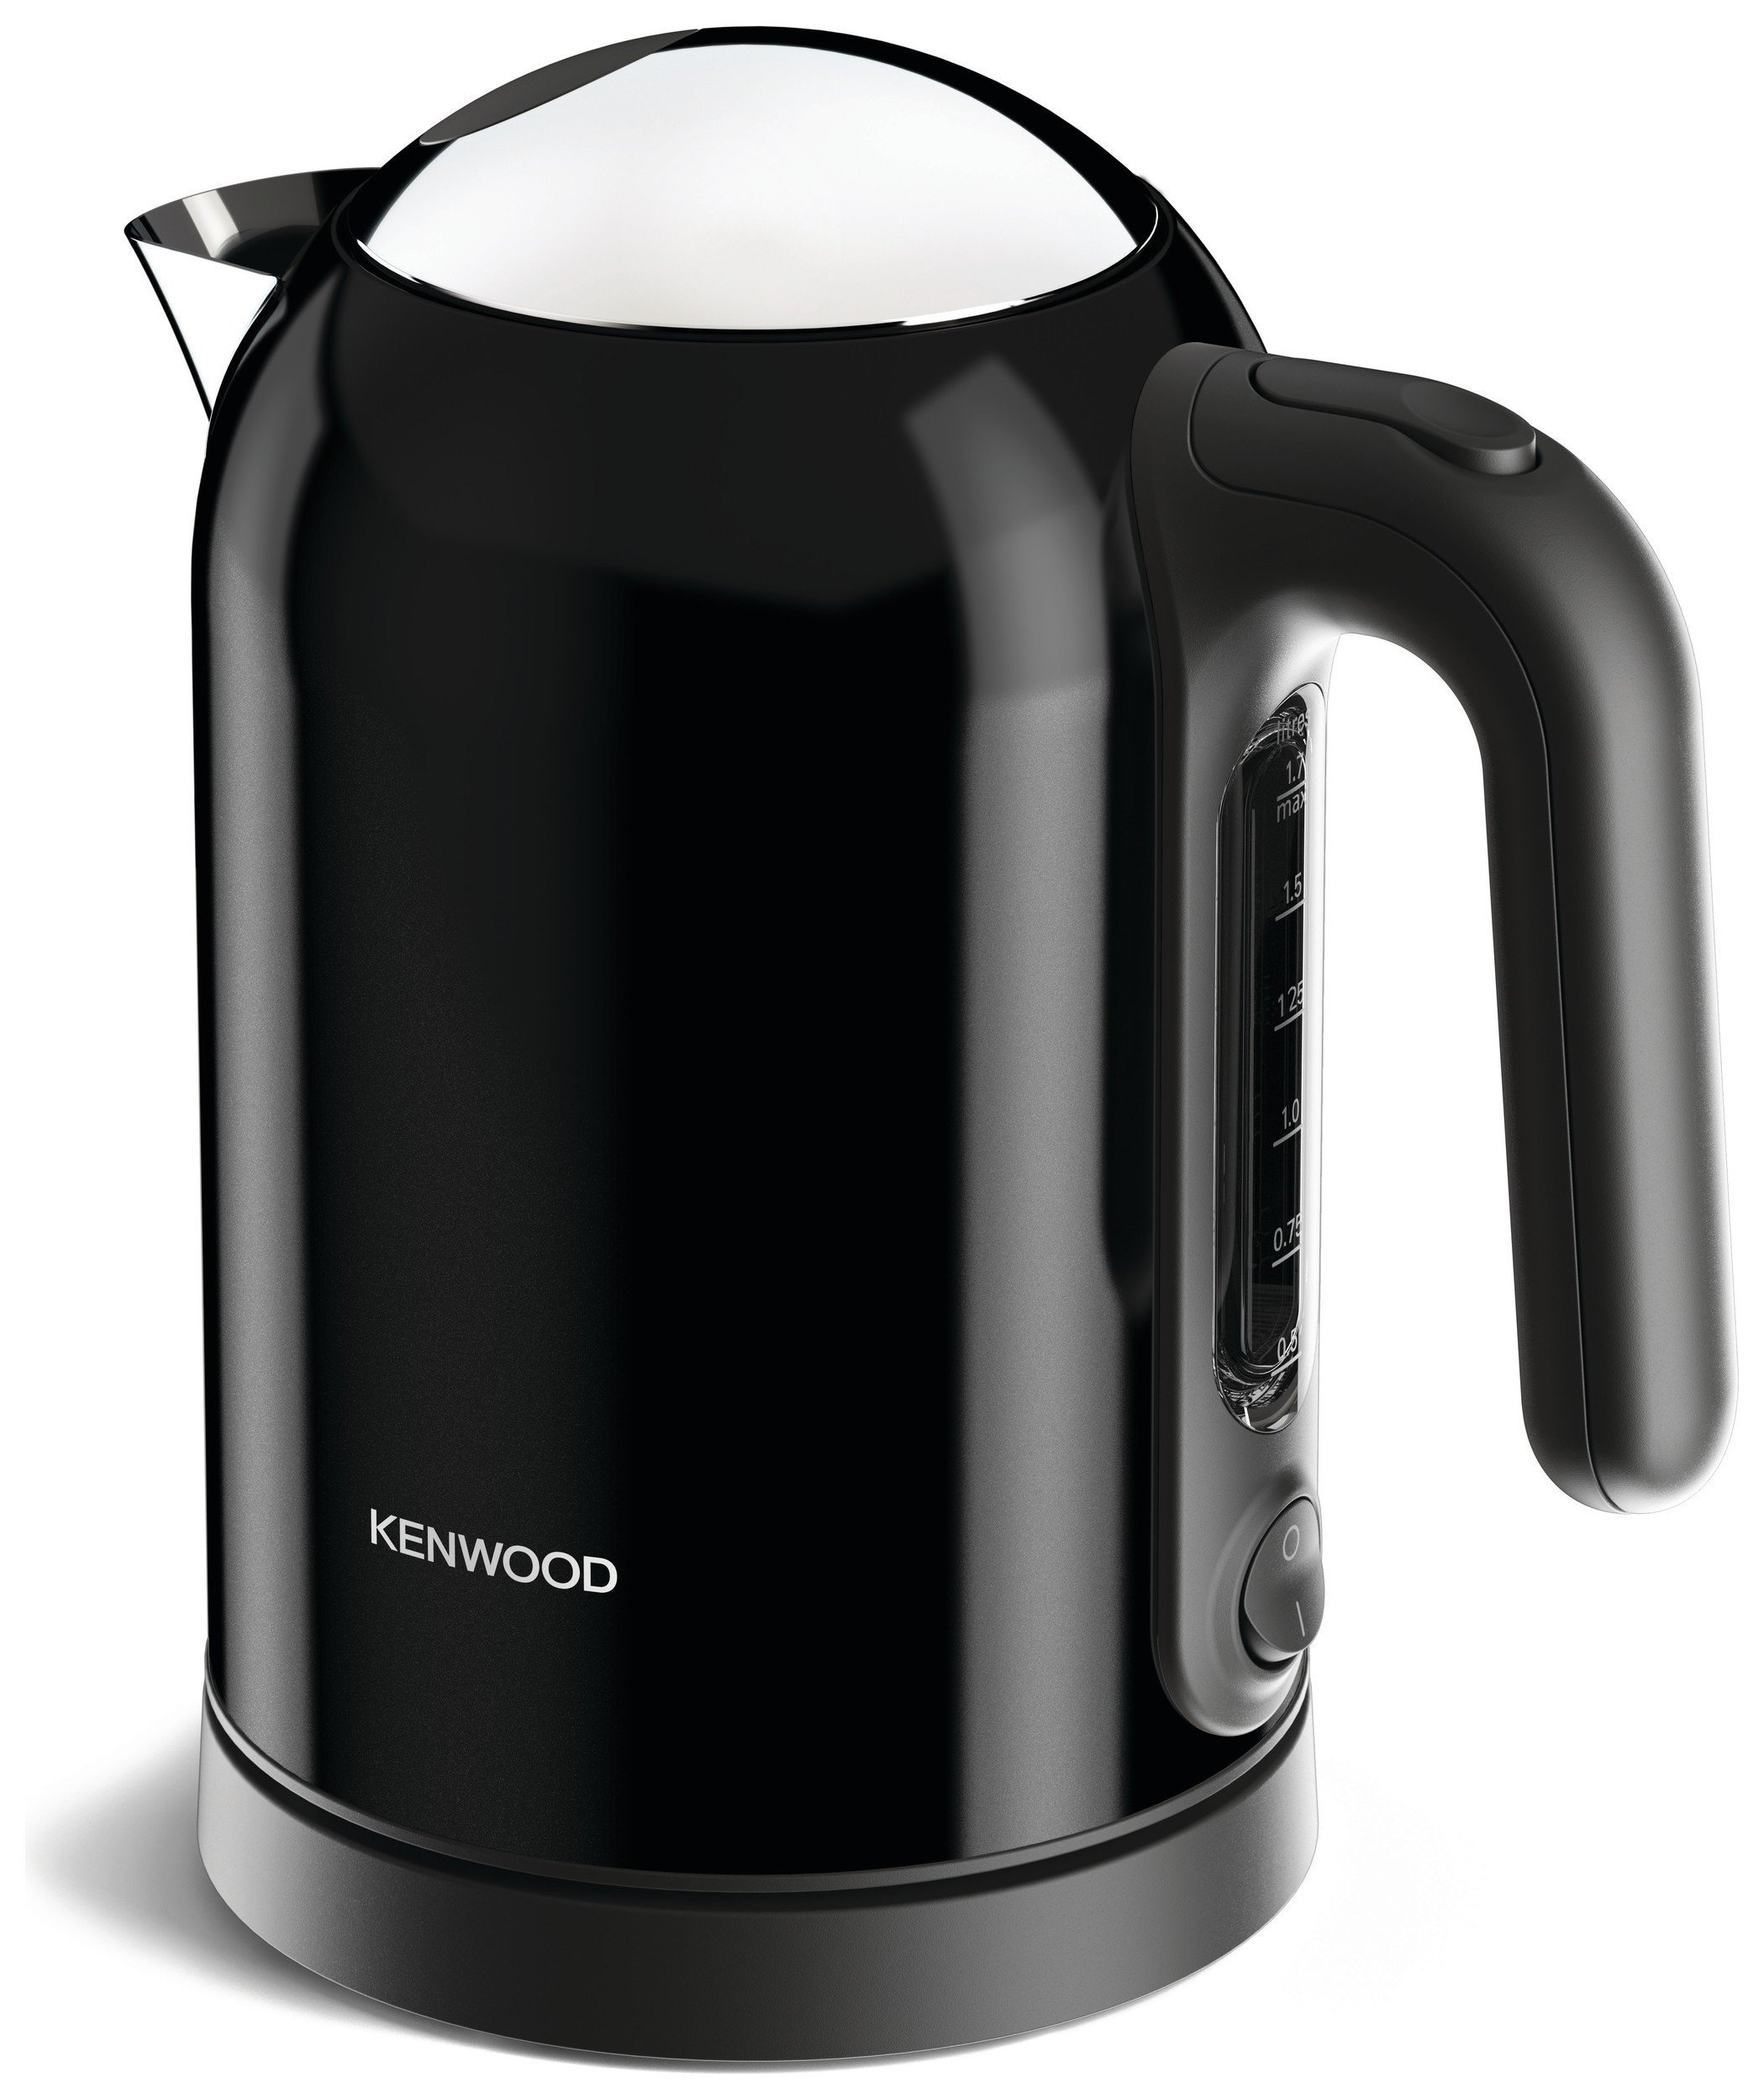 Kenwood Designer Homeware